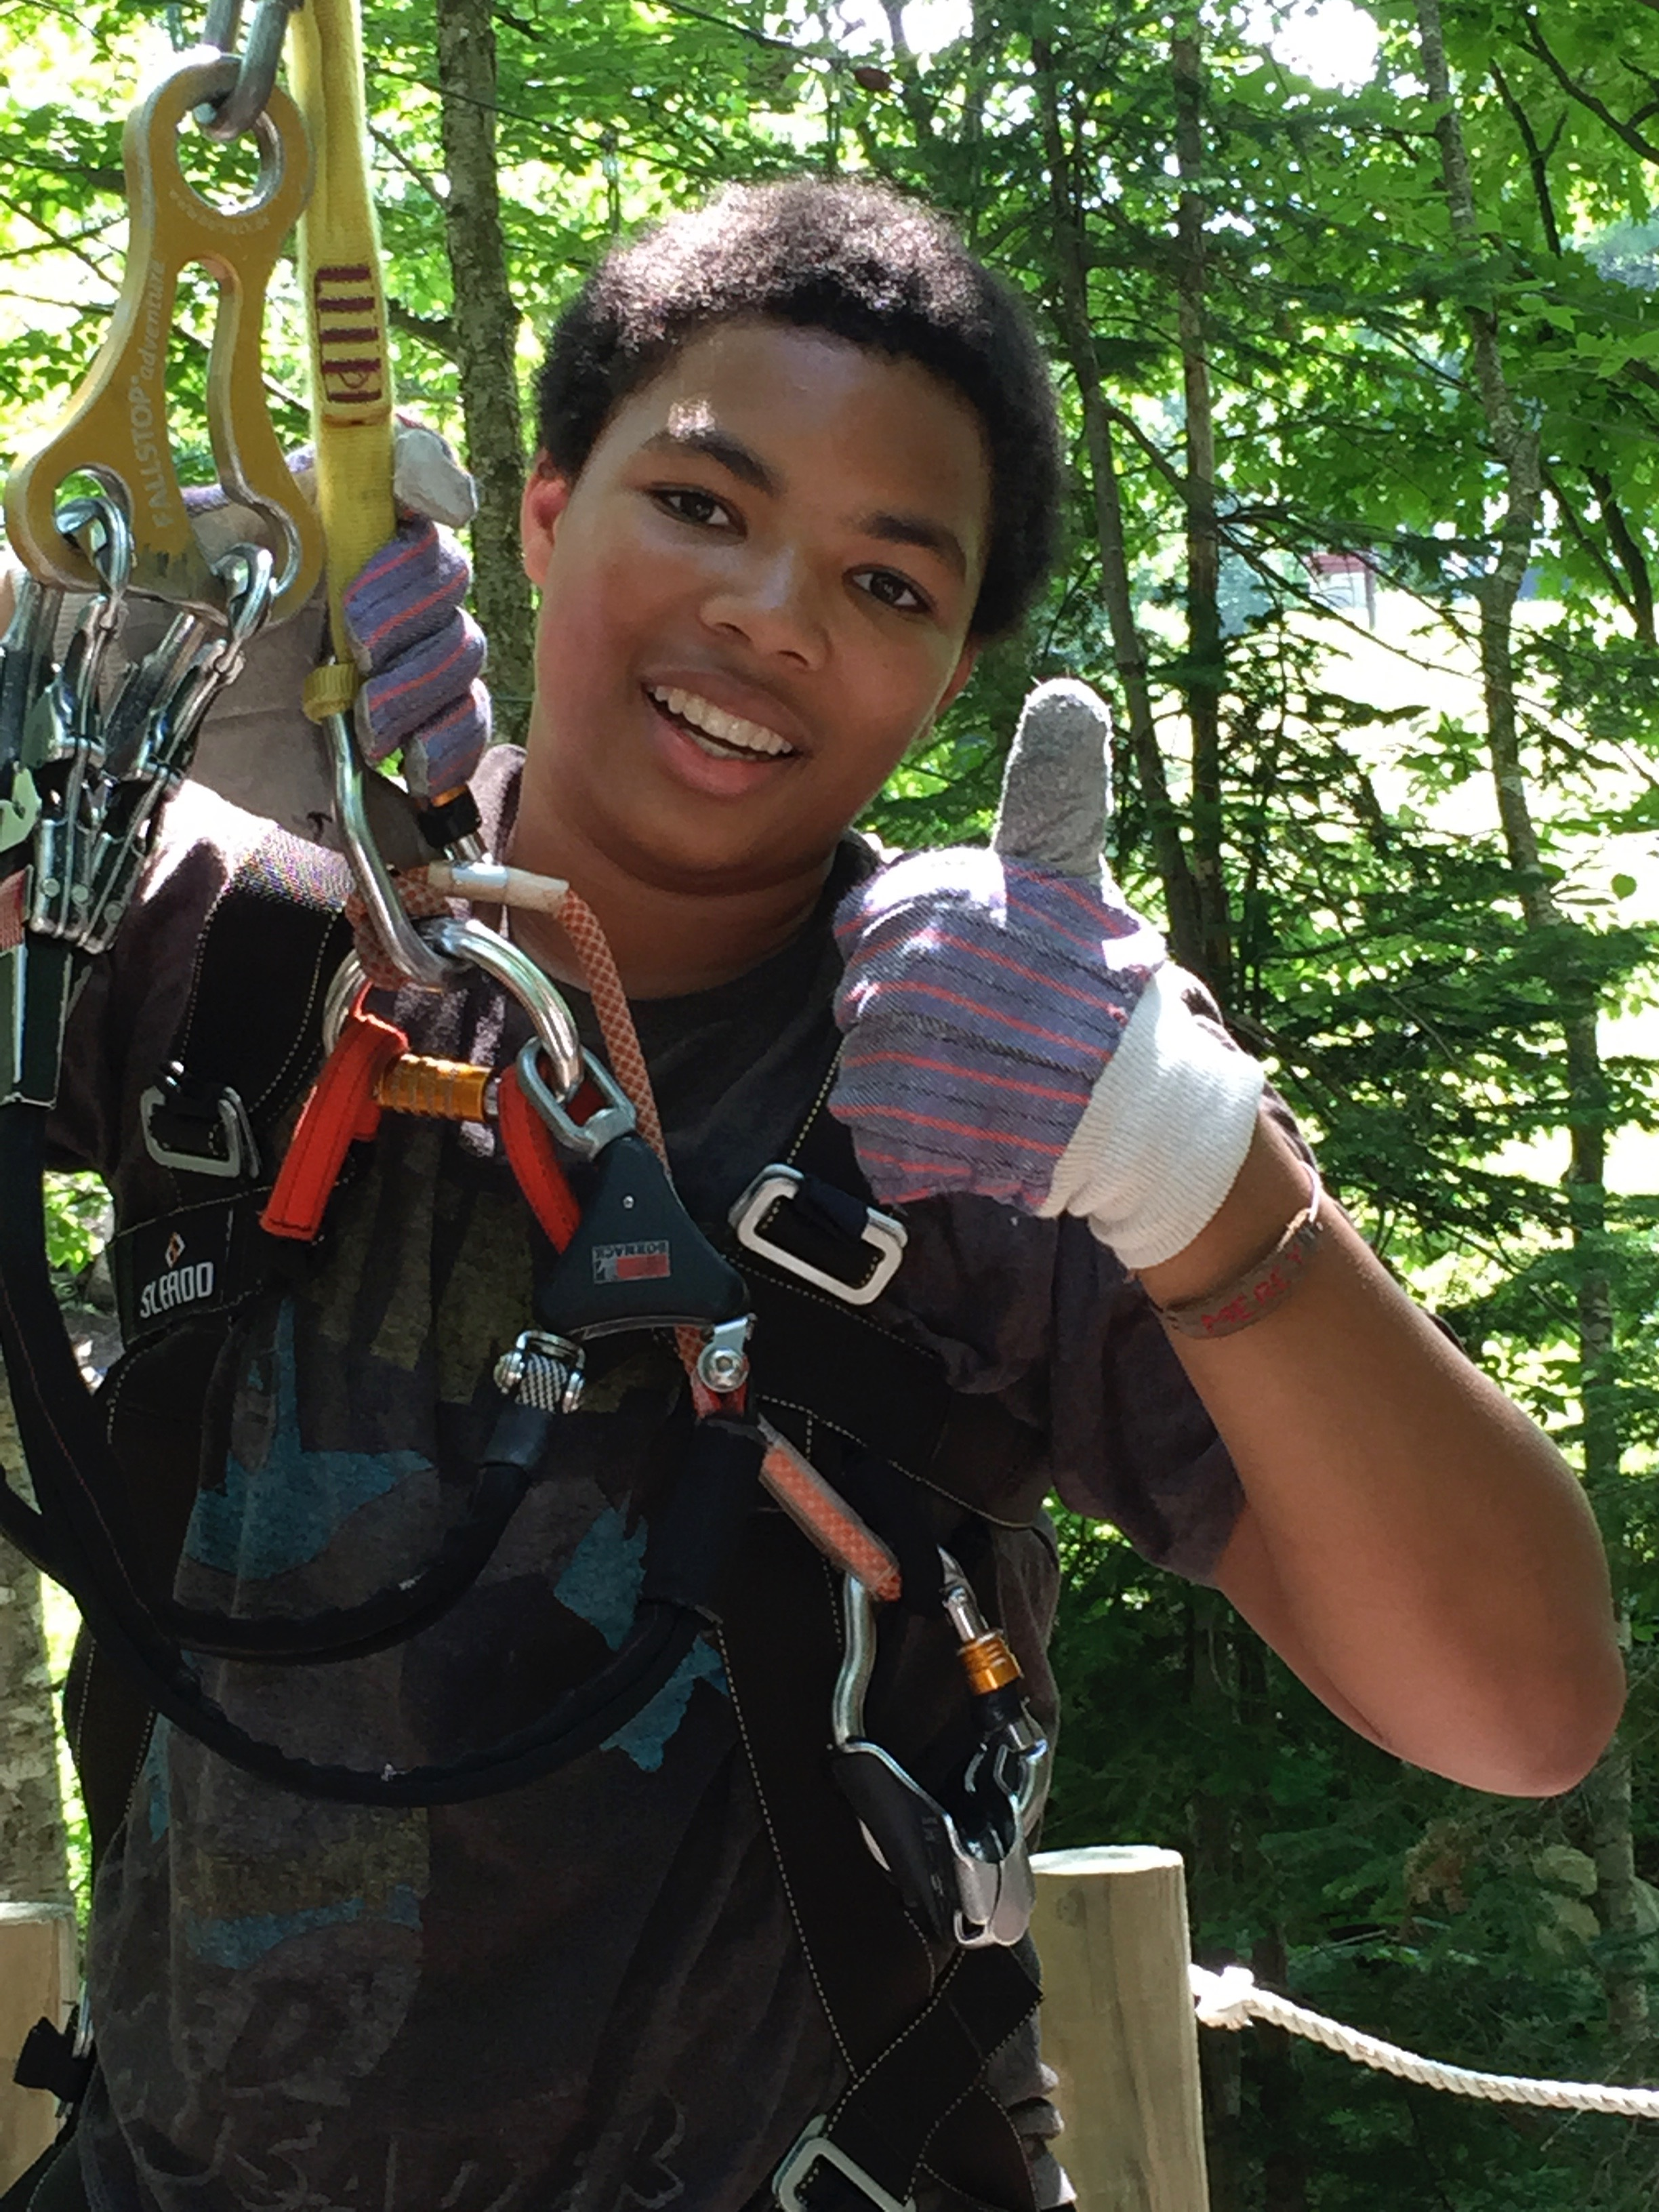 Testing limits on the ropes course